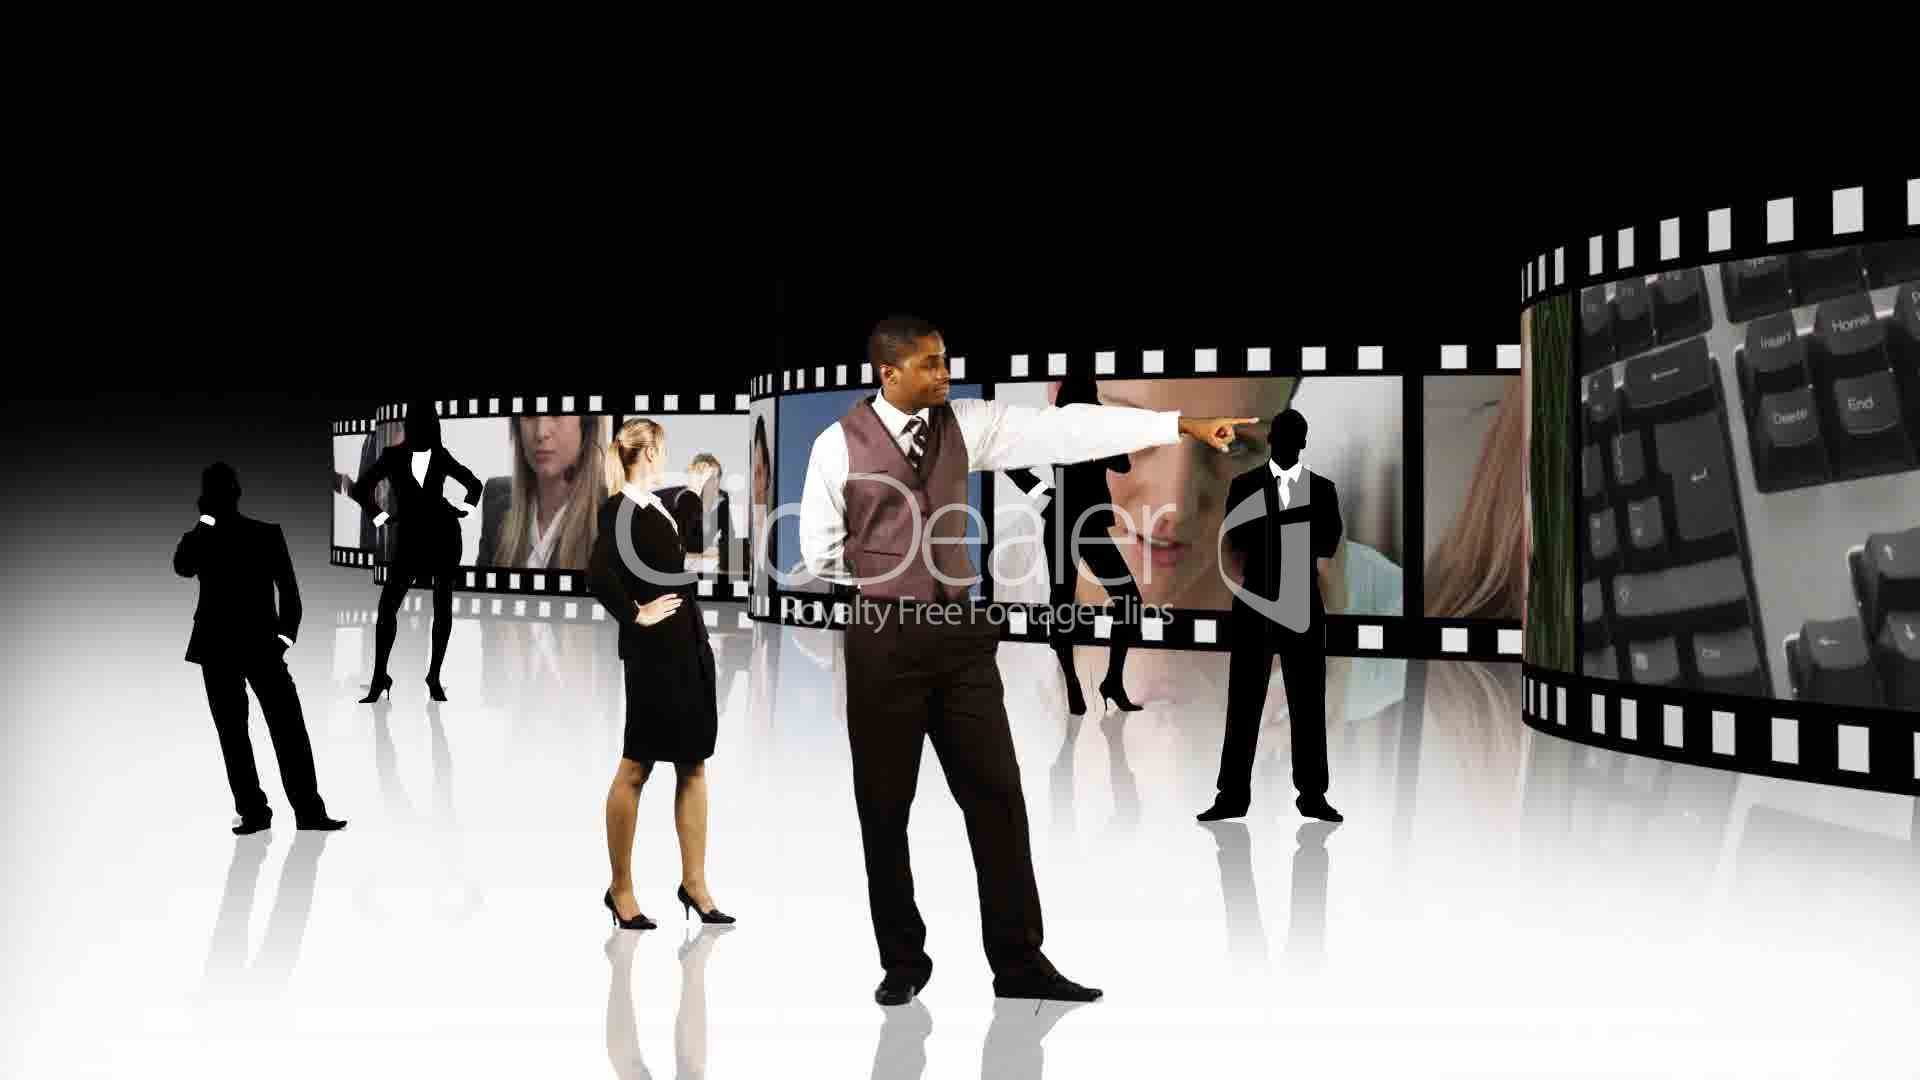 Film scenes bureau royalty free video and stock footage for Bureau stock 13